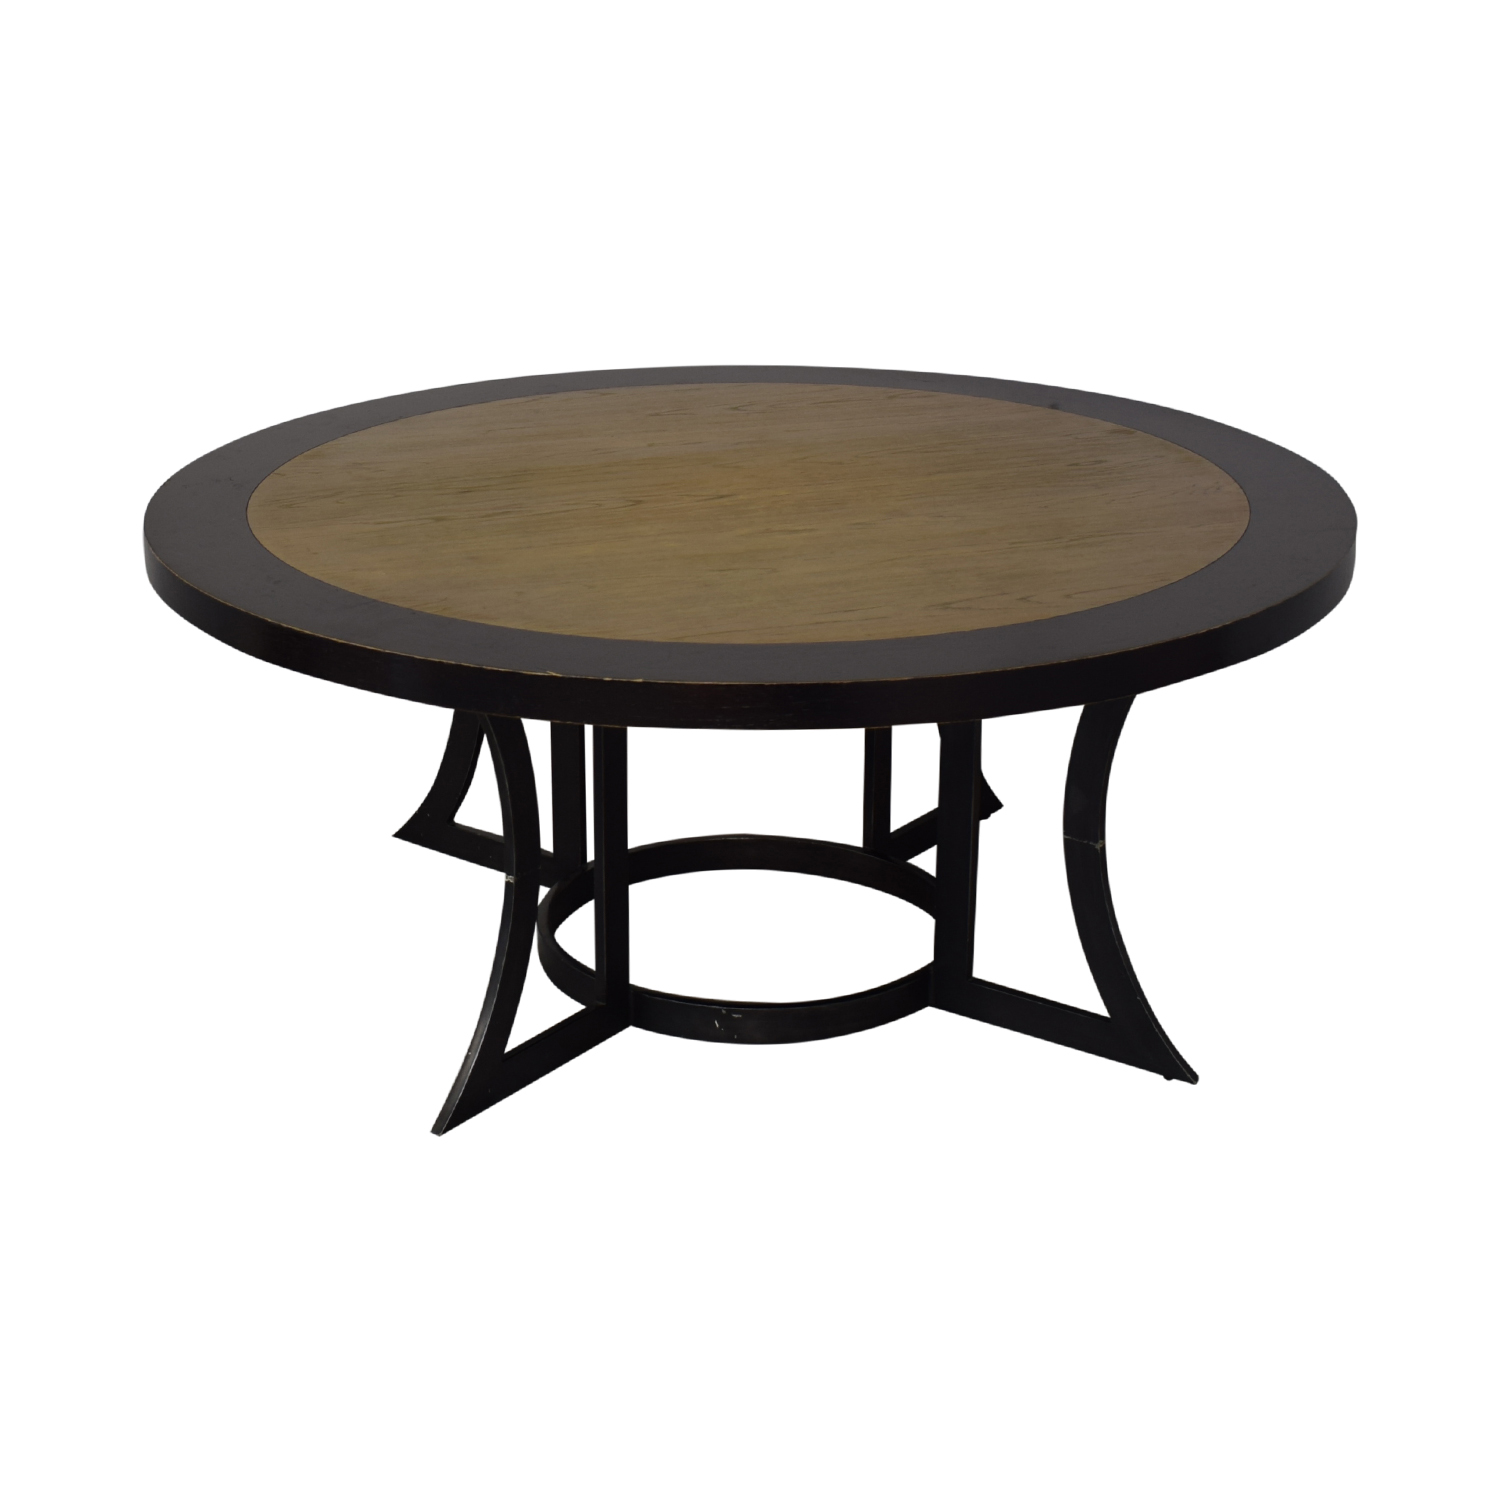 Thom Filicia Thom Filicia Dining Table coupon